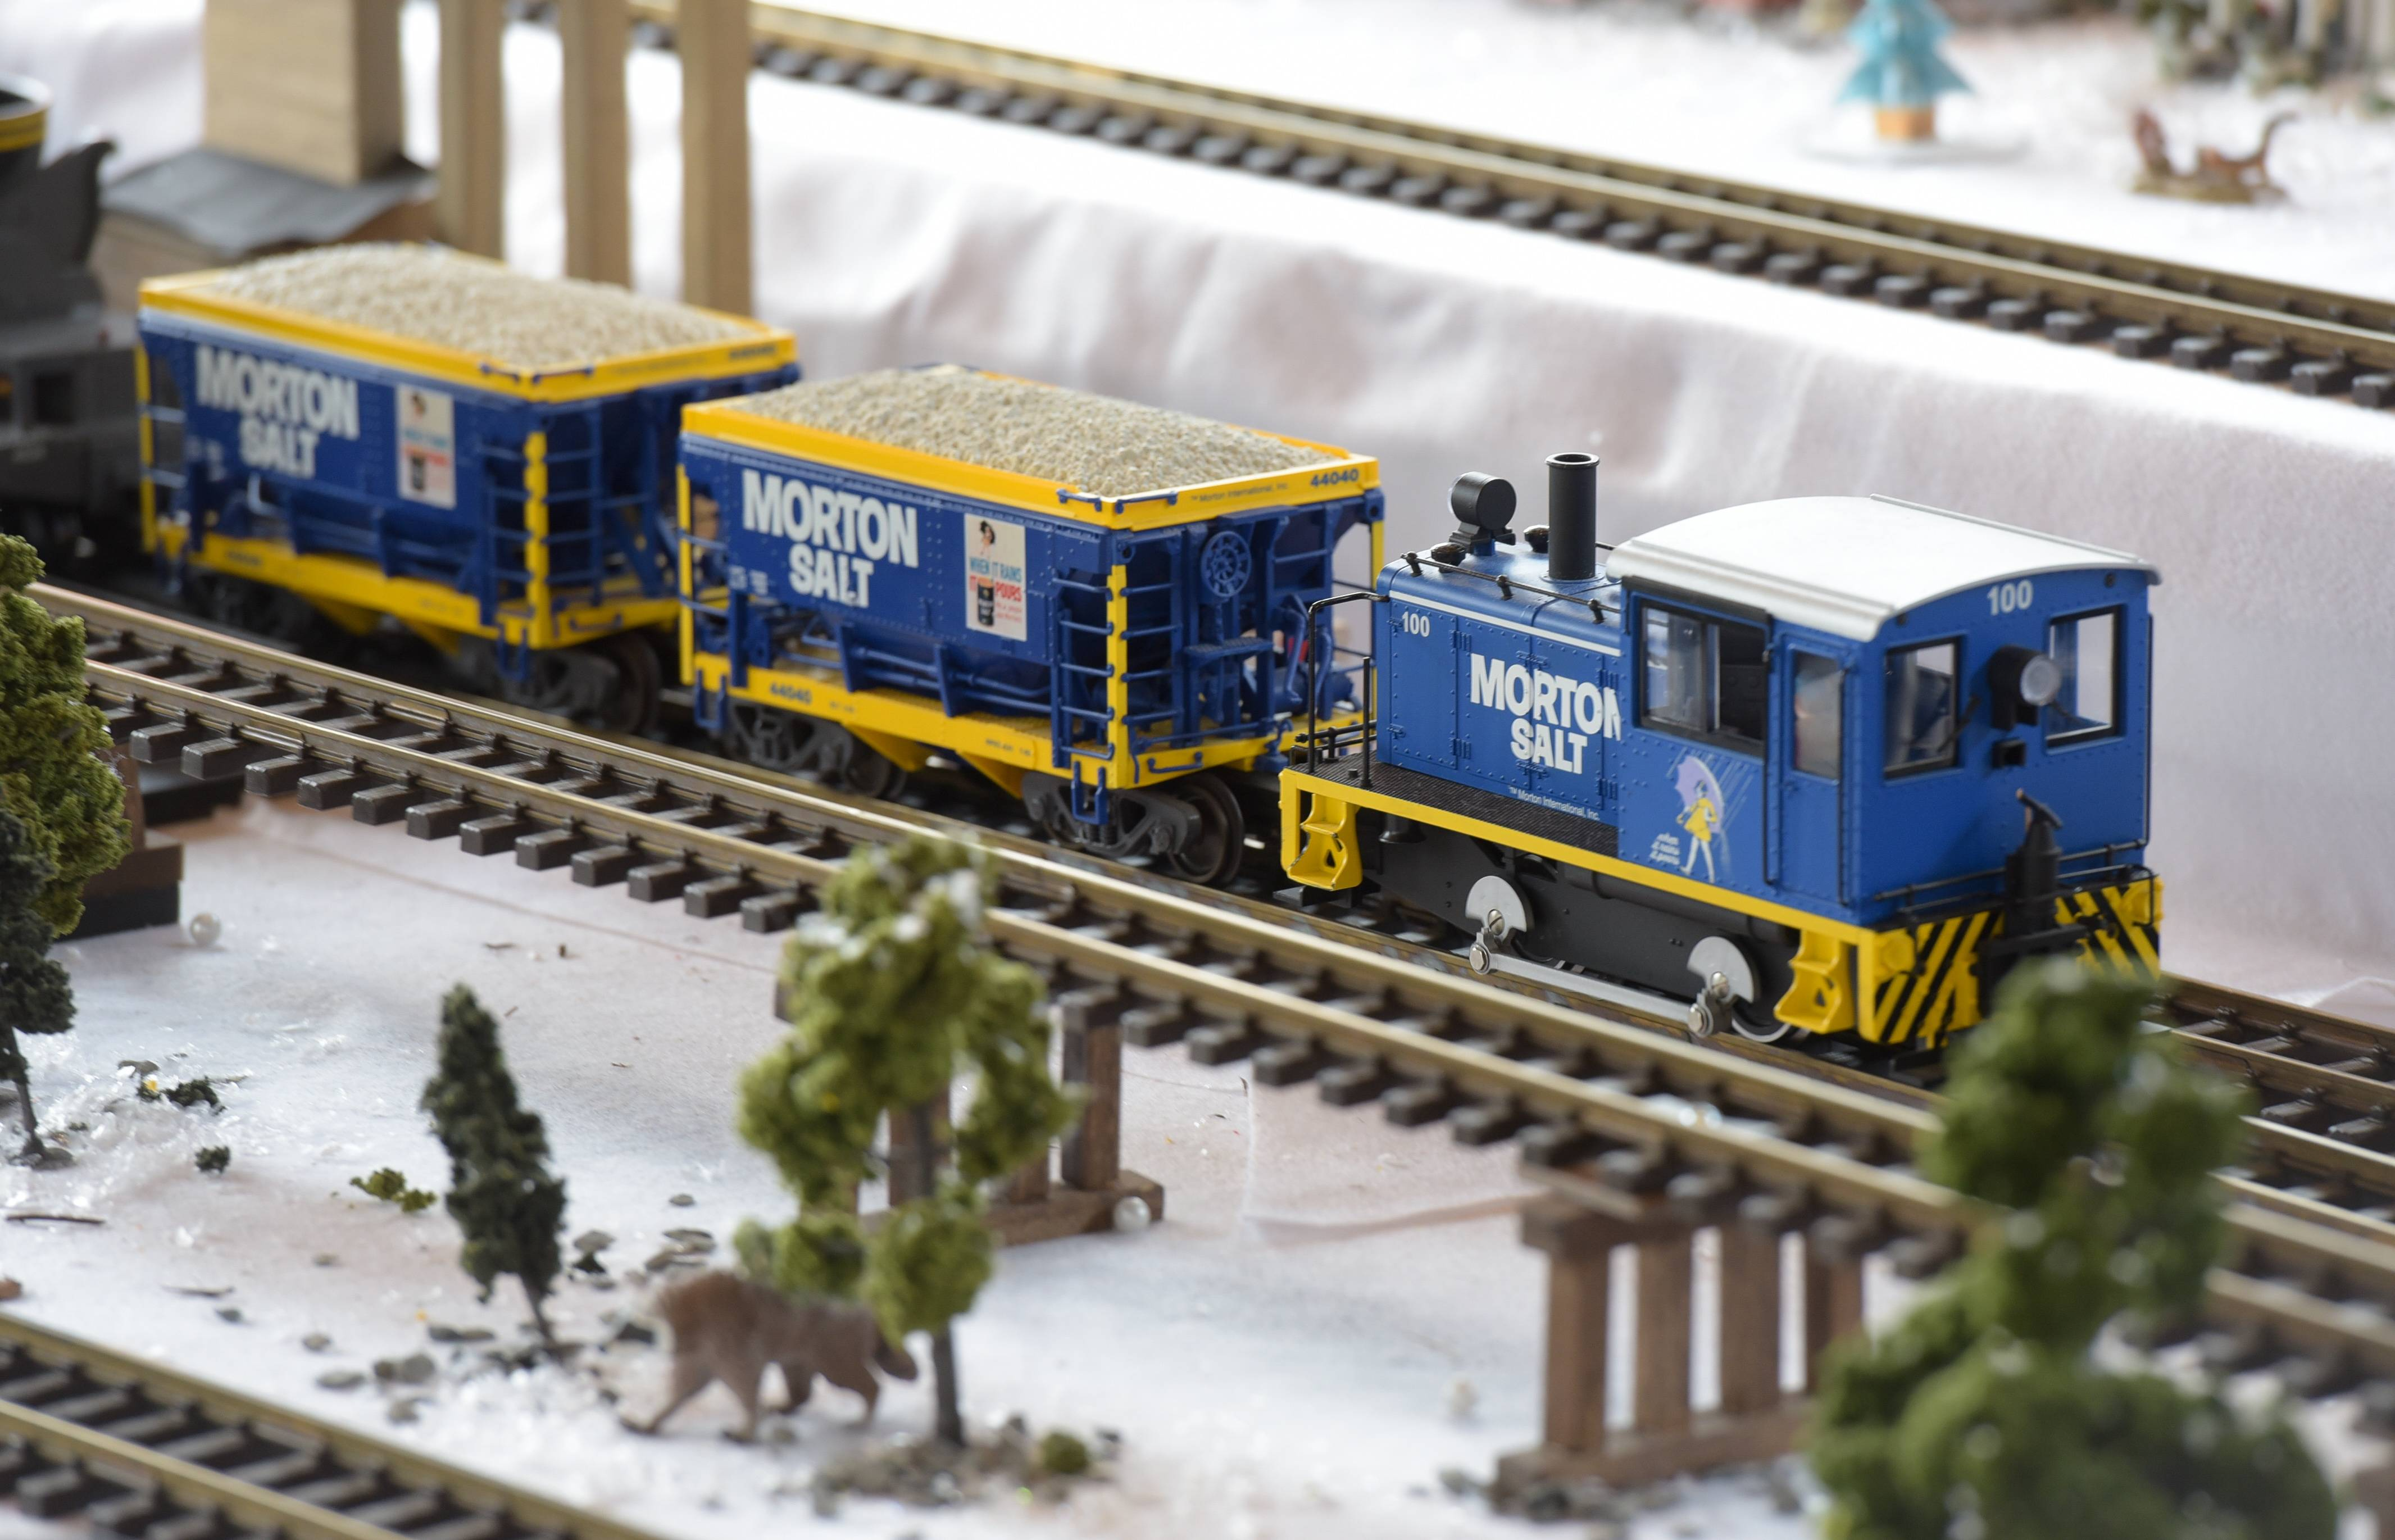 A Morton Salt train is one of the featured attractions at the Enchanted Railroad display at the Morton Arboretum in Lisle.